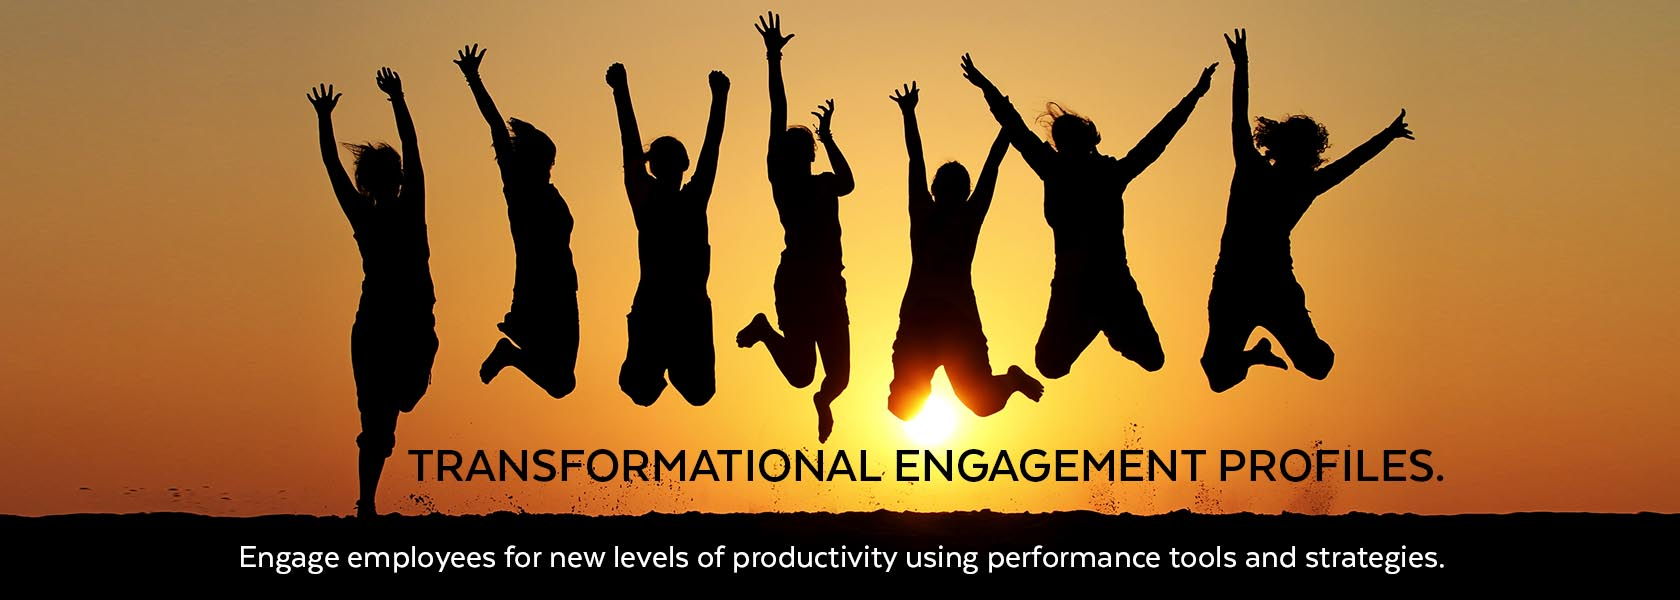 Transformational Engagement Profiles